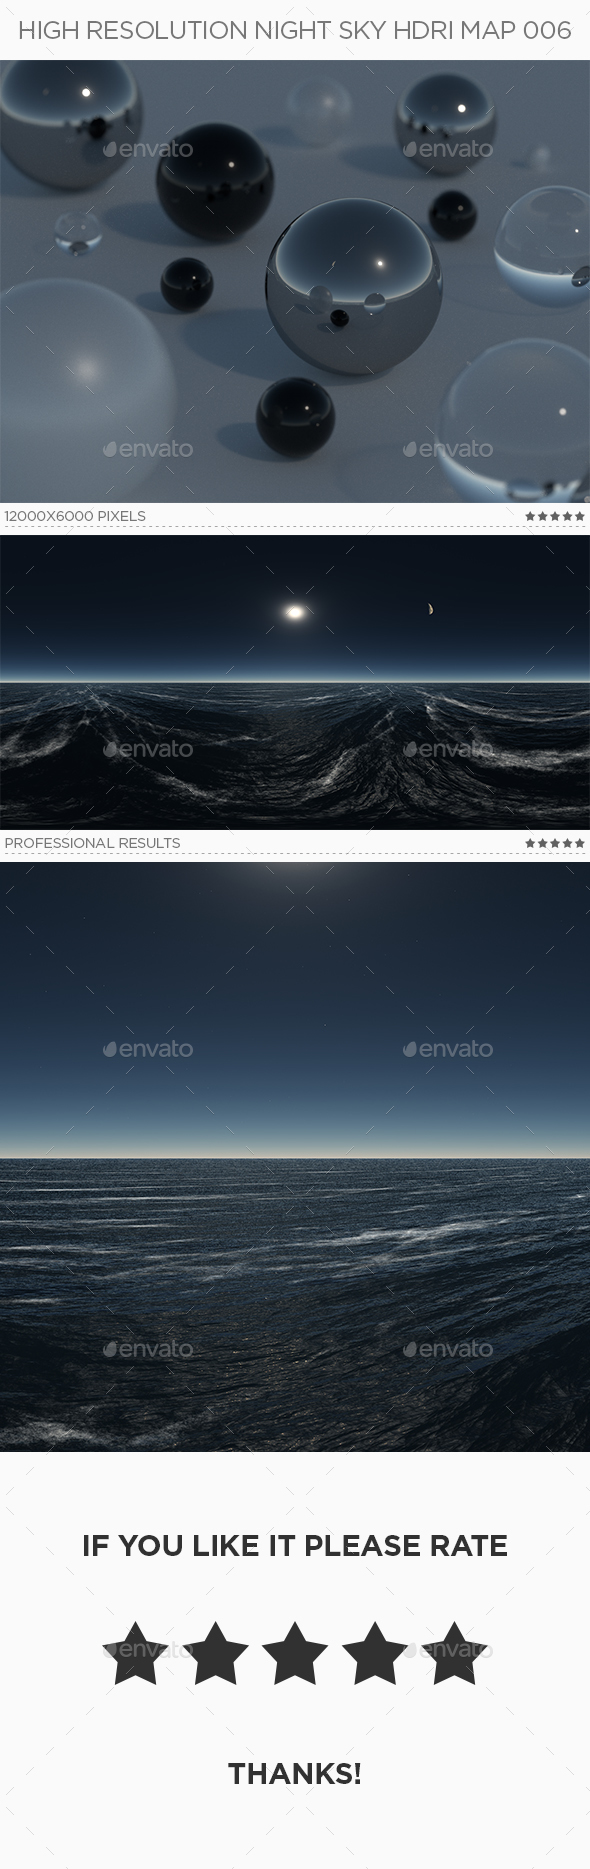 High Resolution Night Sky HDRi Map 006 - 3DOcean Item for Sale